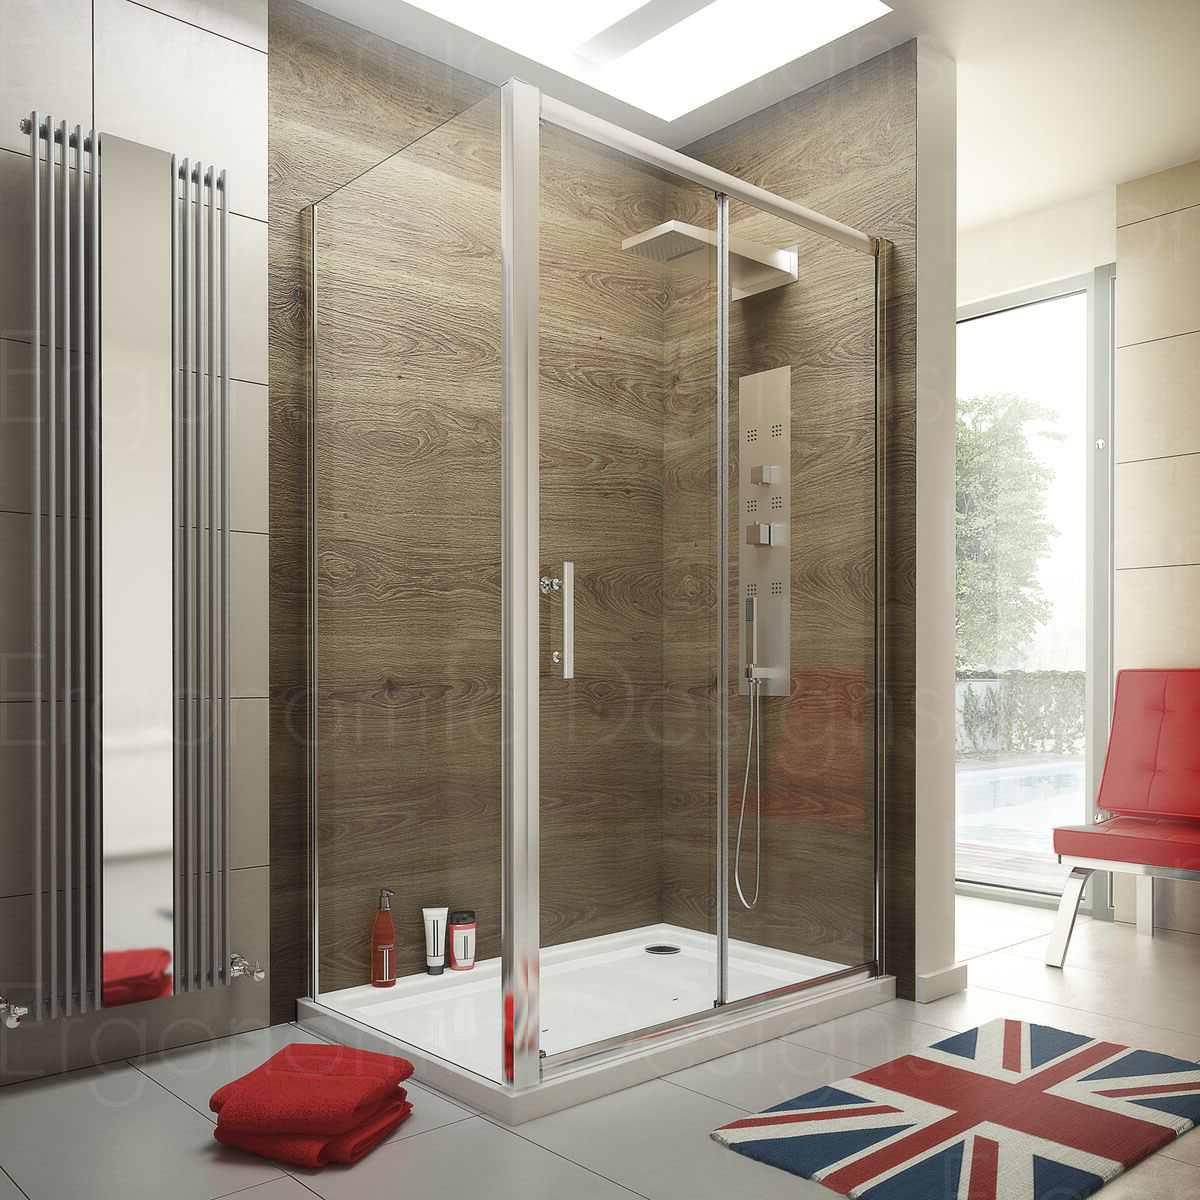 1600 x 700 Sliding Door Shower Enclosure Glass Cubicle with Stone ...